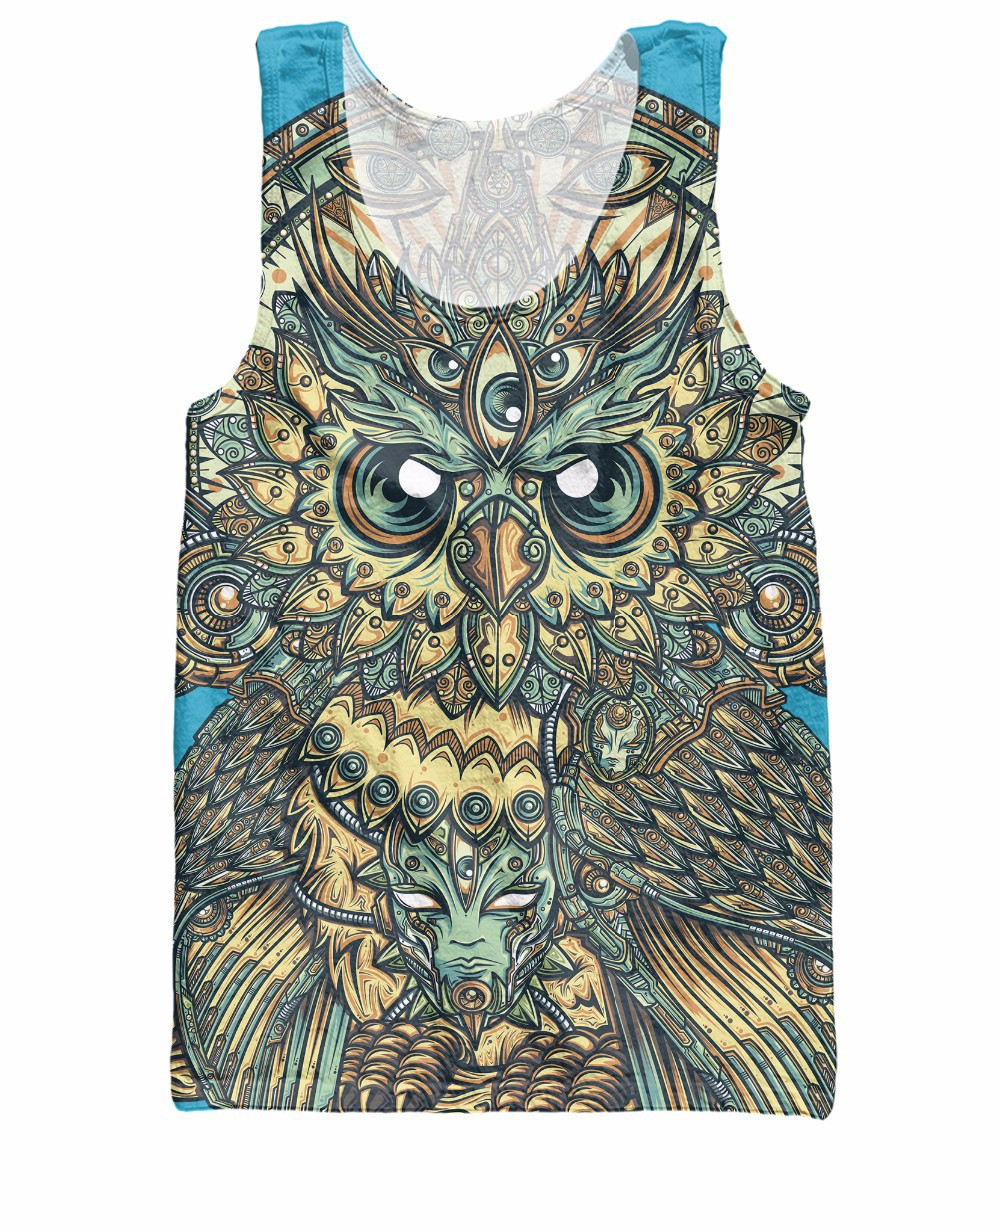 Vibrant colors and textures God Owl Of Dreams T-Shirt Sick Tee Summer Casual t shirt For Unisex Men Dorpshiping Plus S-6XL R2193